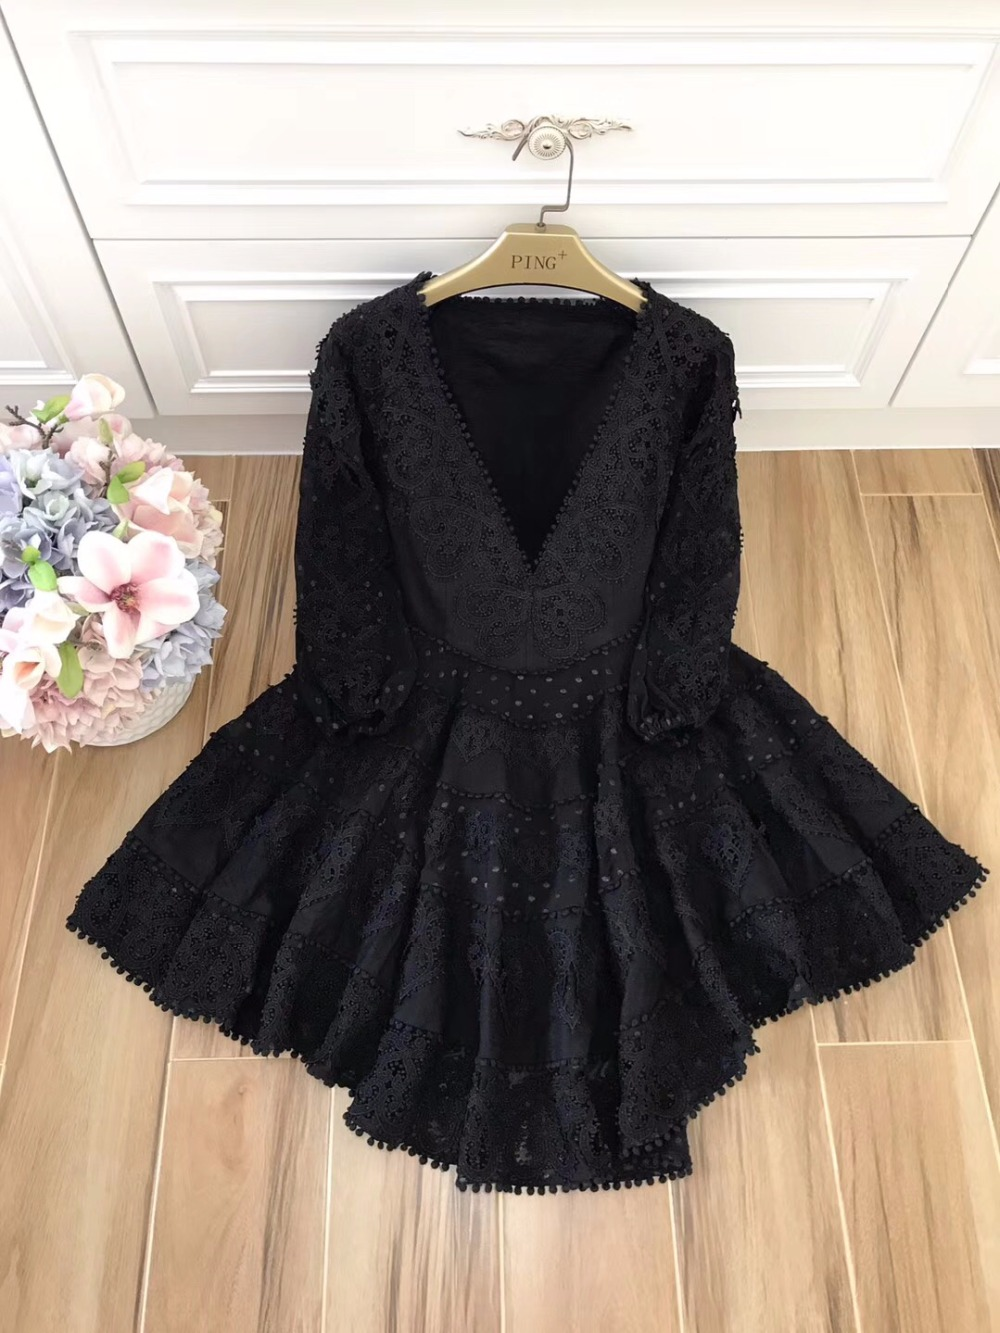 New Princess Women's Dress Casual Party Club Ladies Sexy Deep V-Neck Hollow Out Cotton Lace Embroidery a-line Summer Dress Mini 10